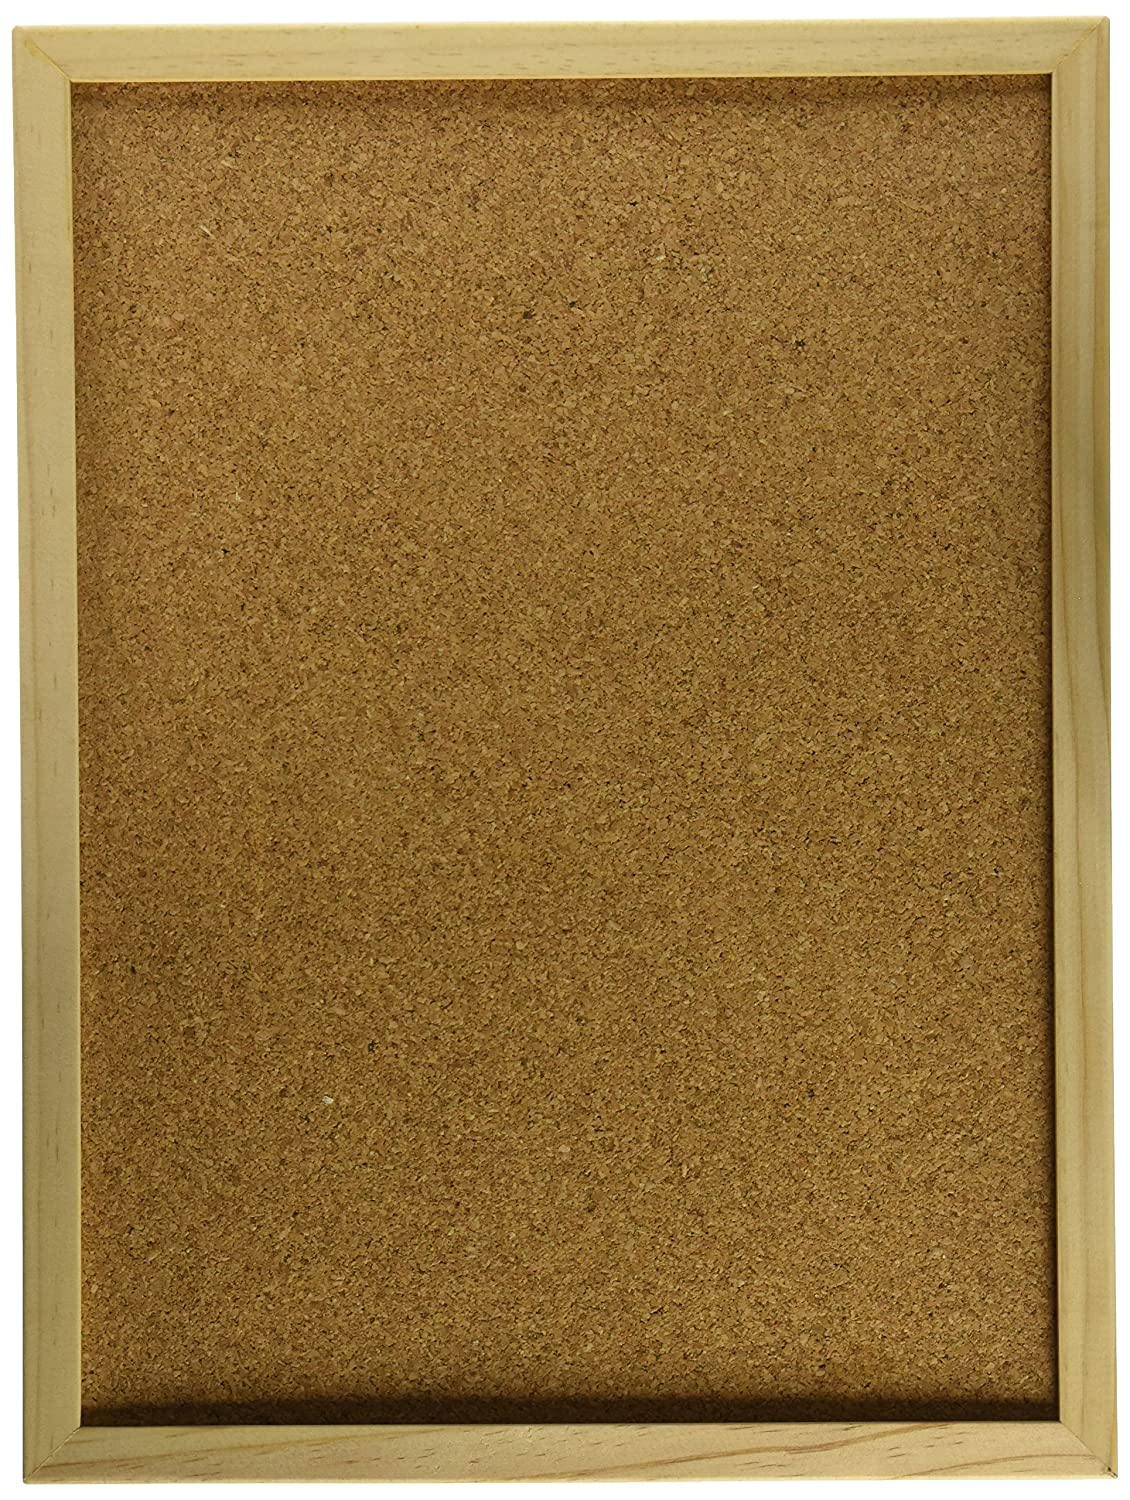 Darice 12 by 16 inch, Wood Framed Cork Memo Board with Push Pins, 16' 16 9172-63